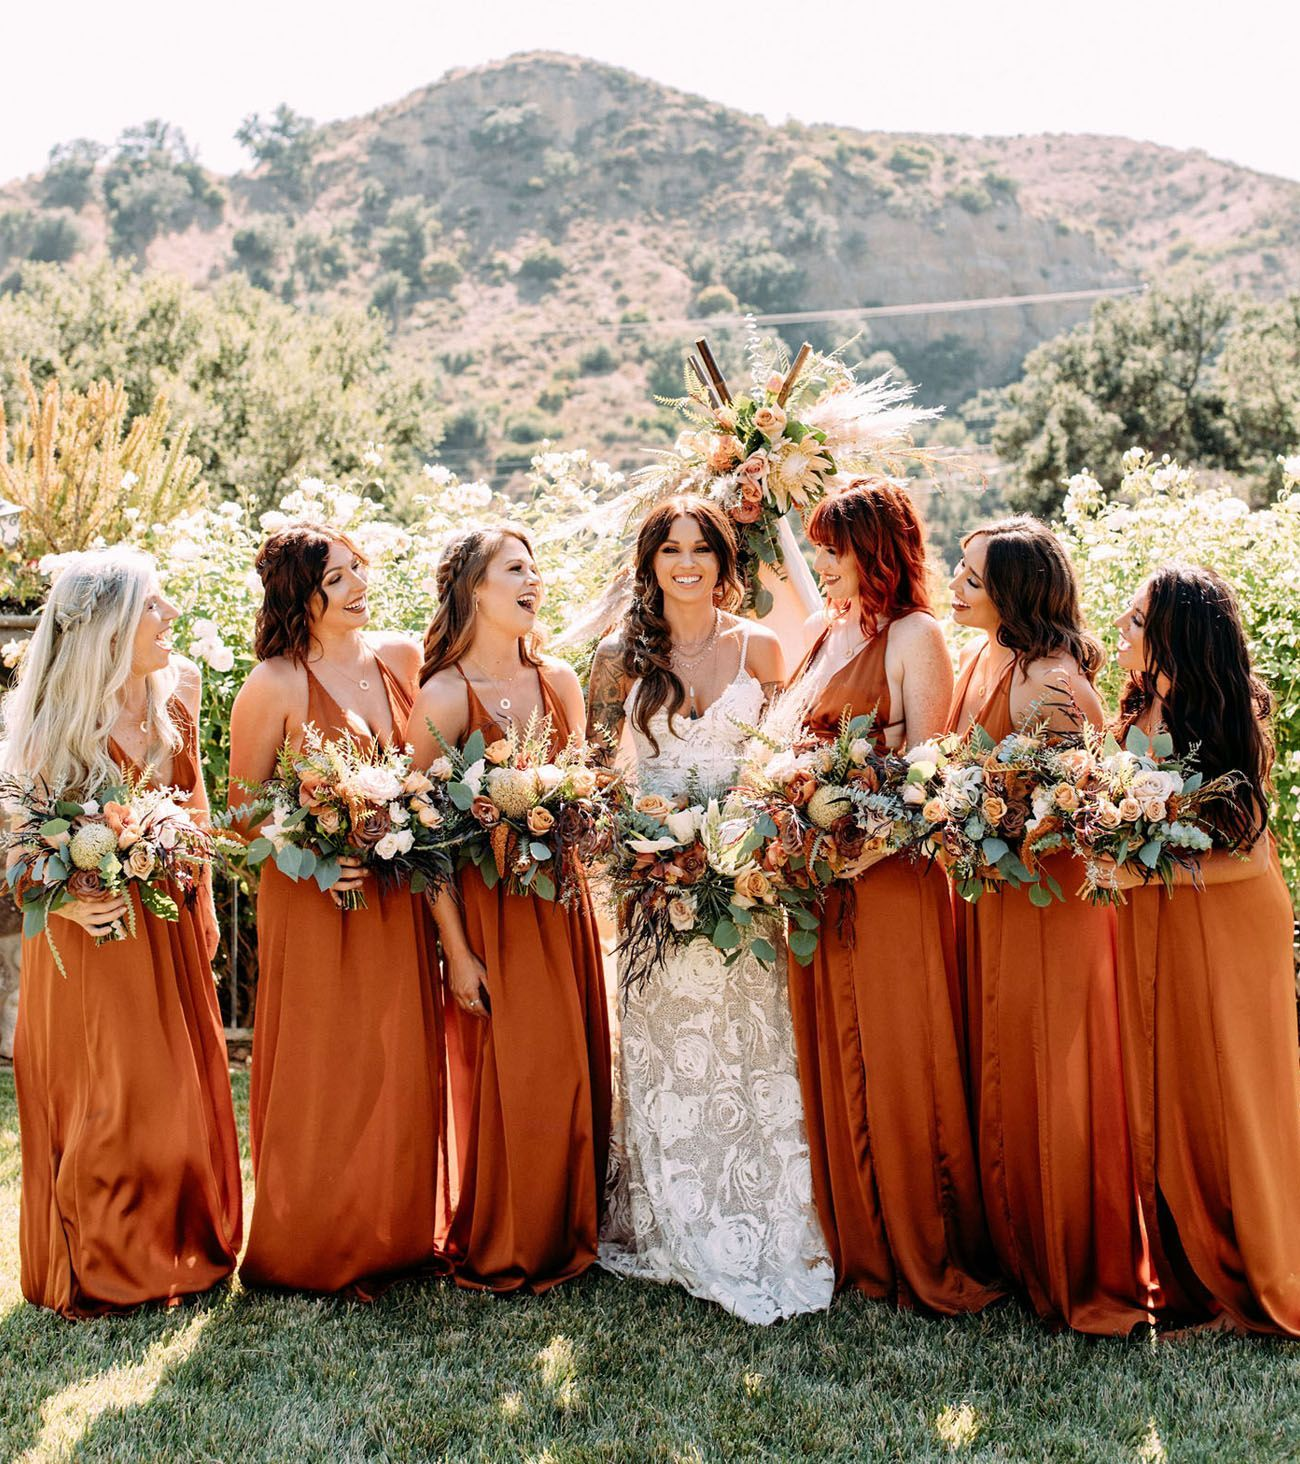 An Autumnal Boho Wedding With Rust Bridesmaids Dresses Spicy Fall Florals And Copper Orange Bridesmaid Dresses Fall Bridesmaid Dresses Rust Bridesmaid Dress